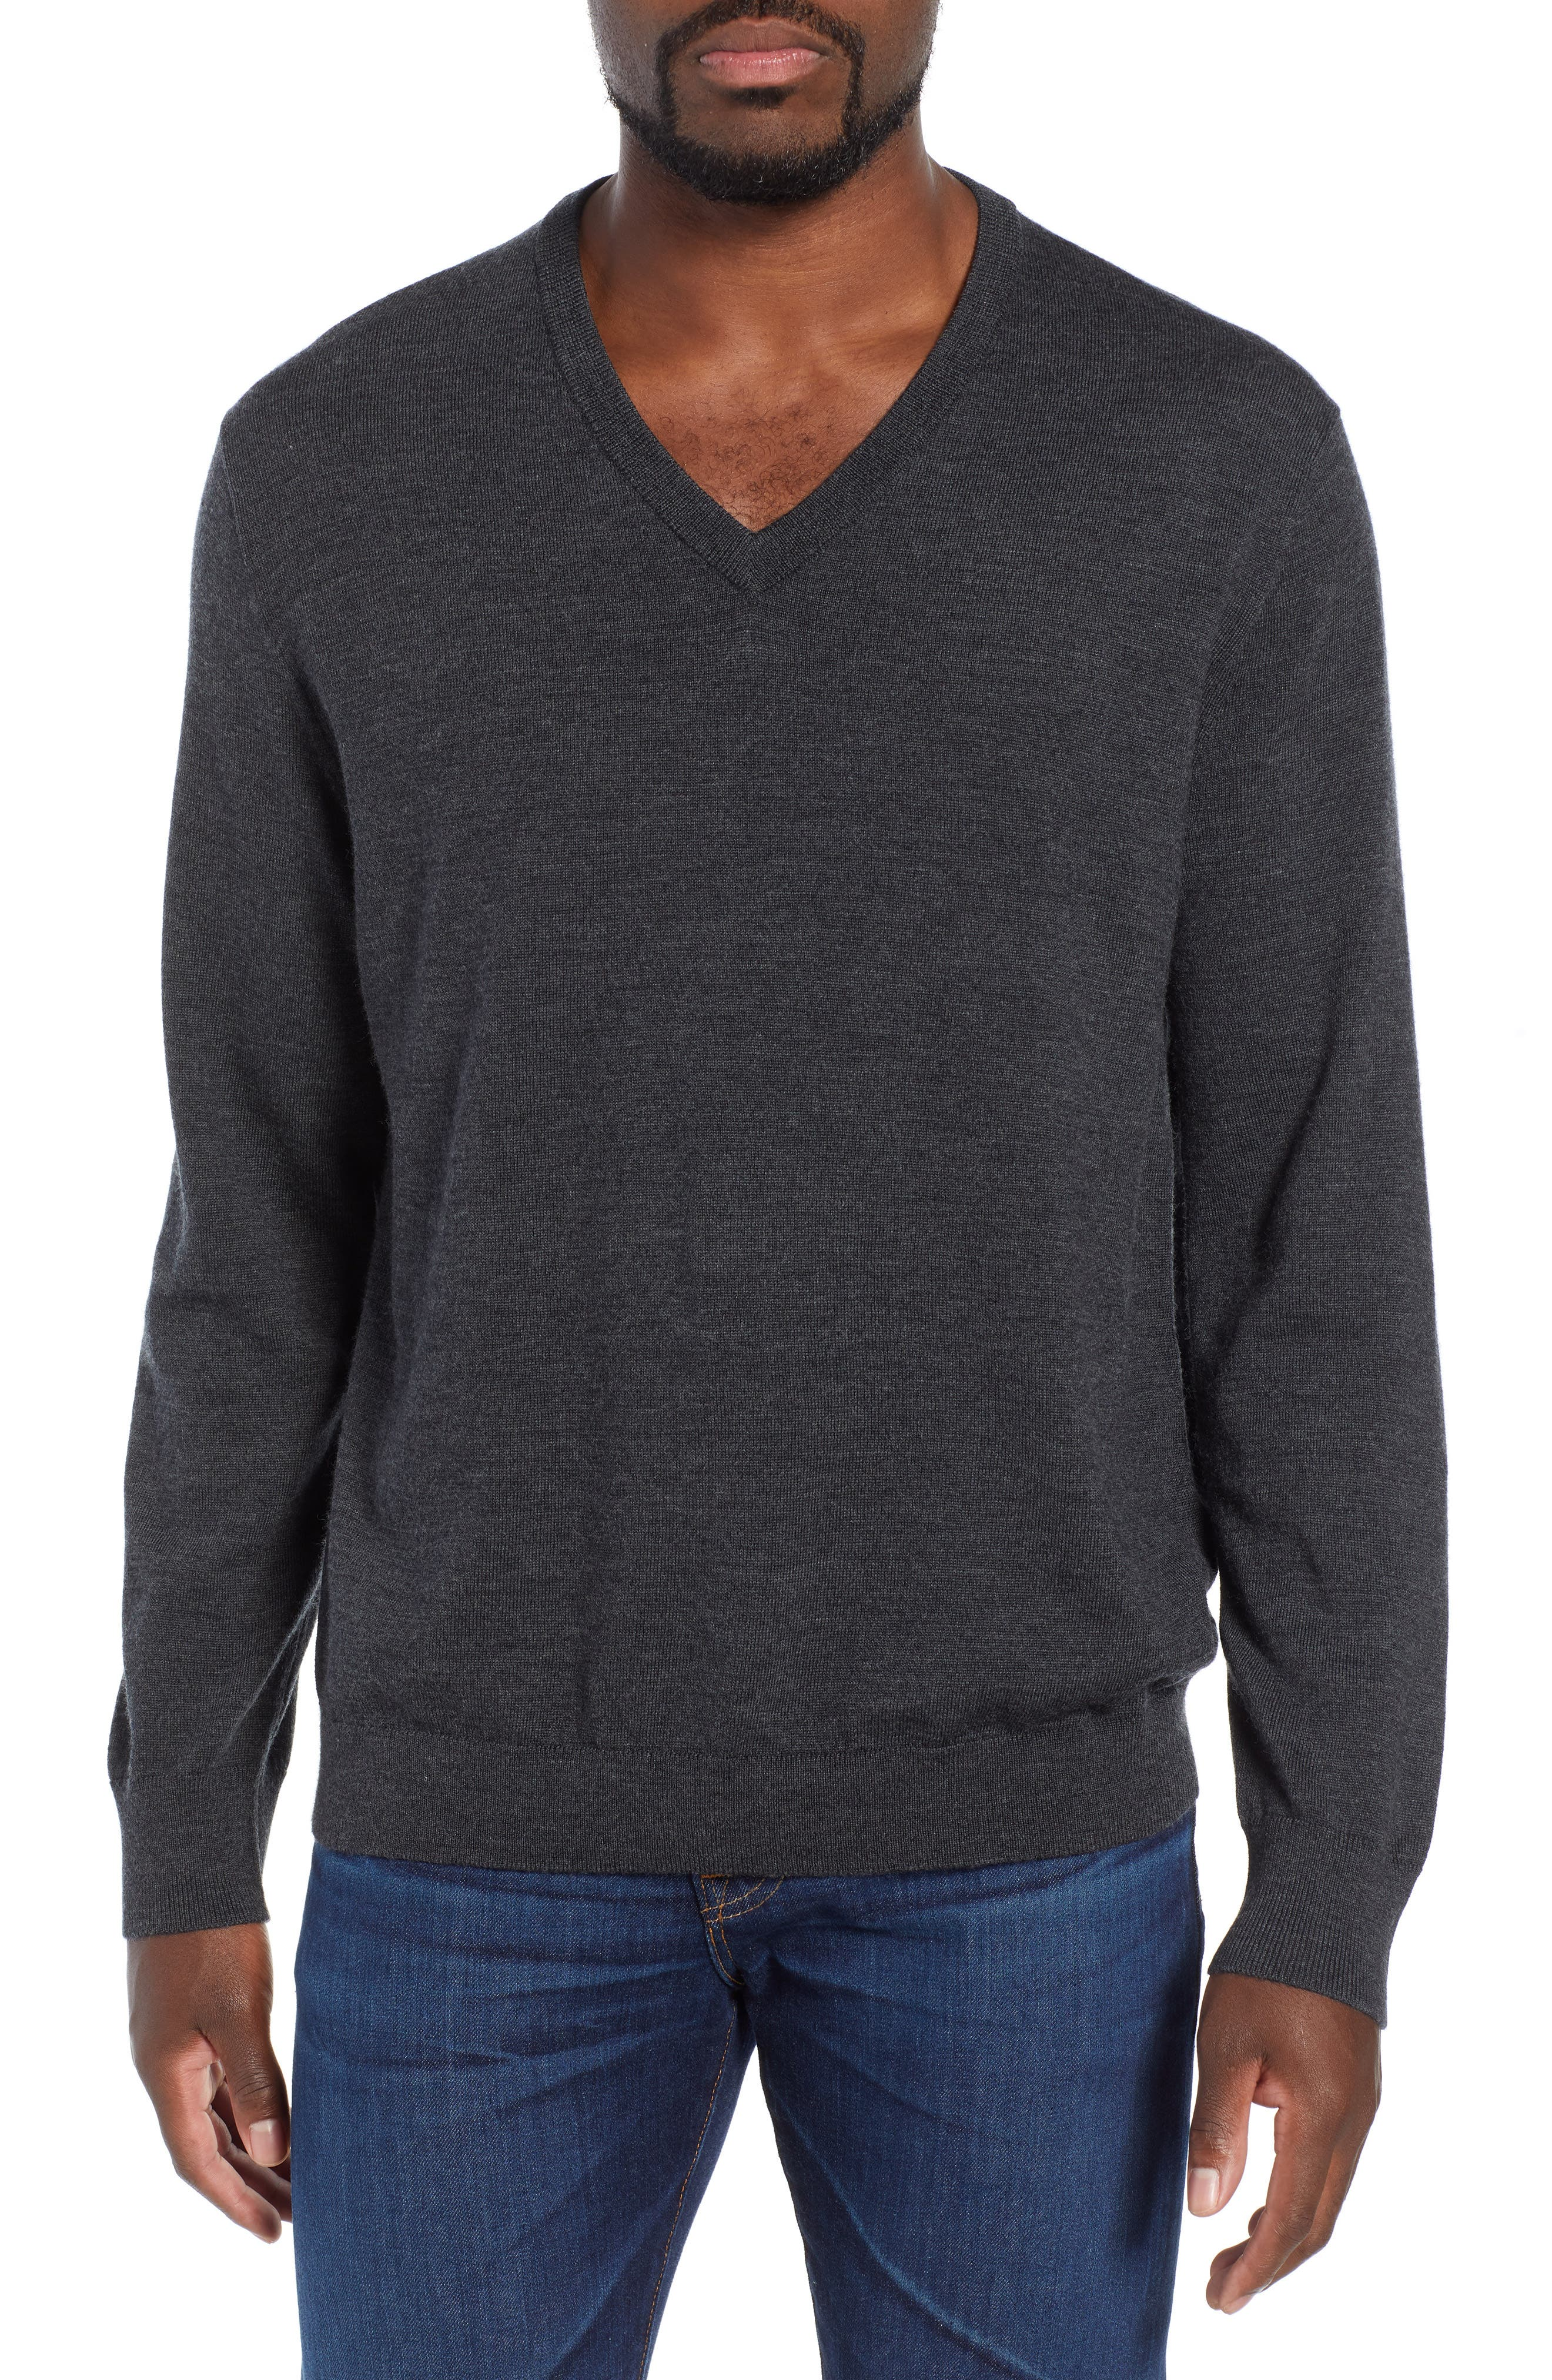 V-Neck Merino Wool Sweater,                             Main thumbnail 1, color,                             HEATHER CHARCOAL